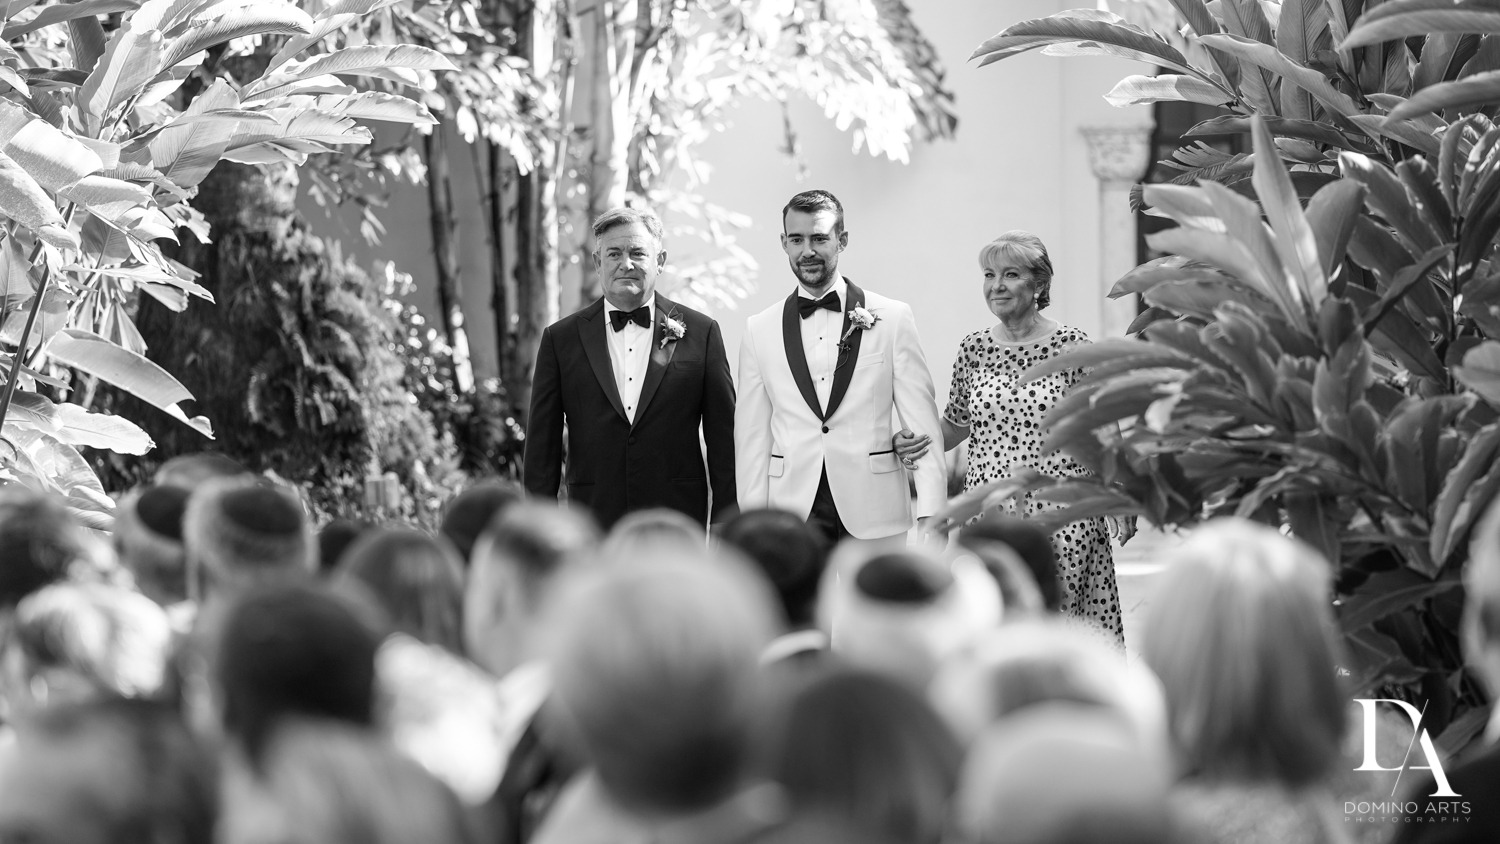 groom walking aisle at Tropical Garden Wedding at Fisher Island Miami by Domino Arts Photography